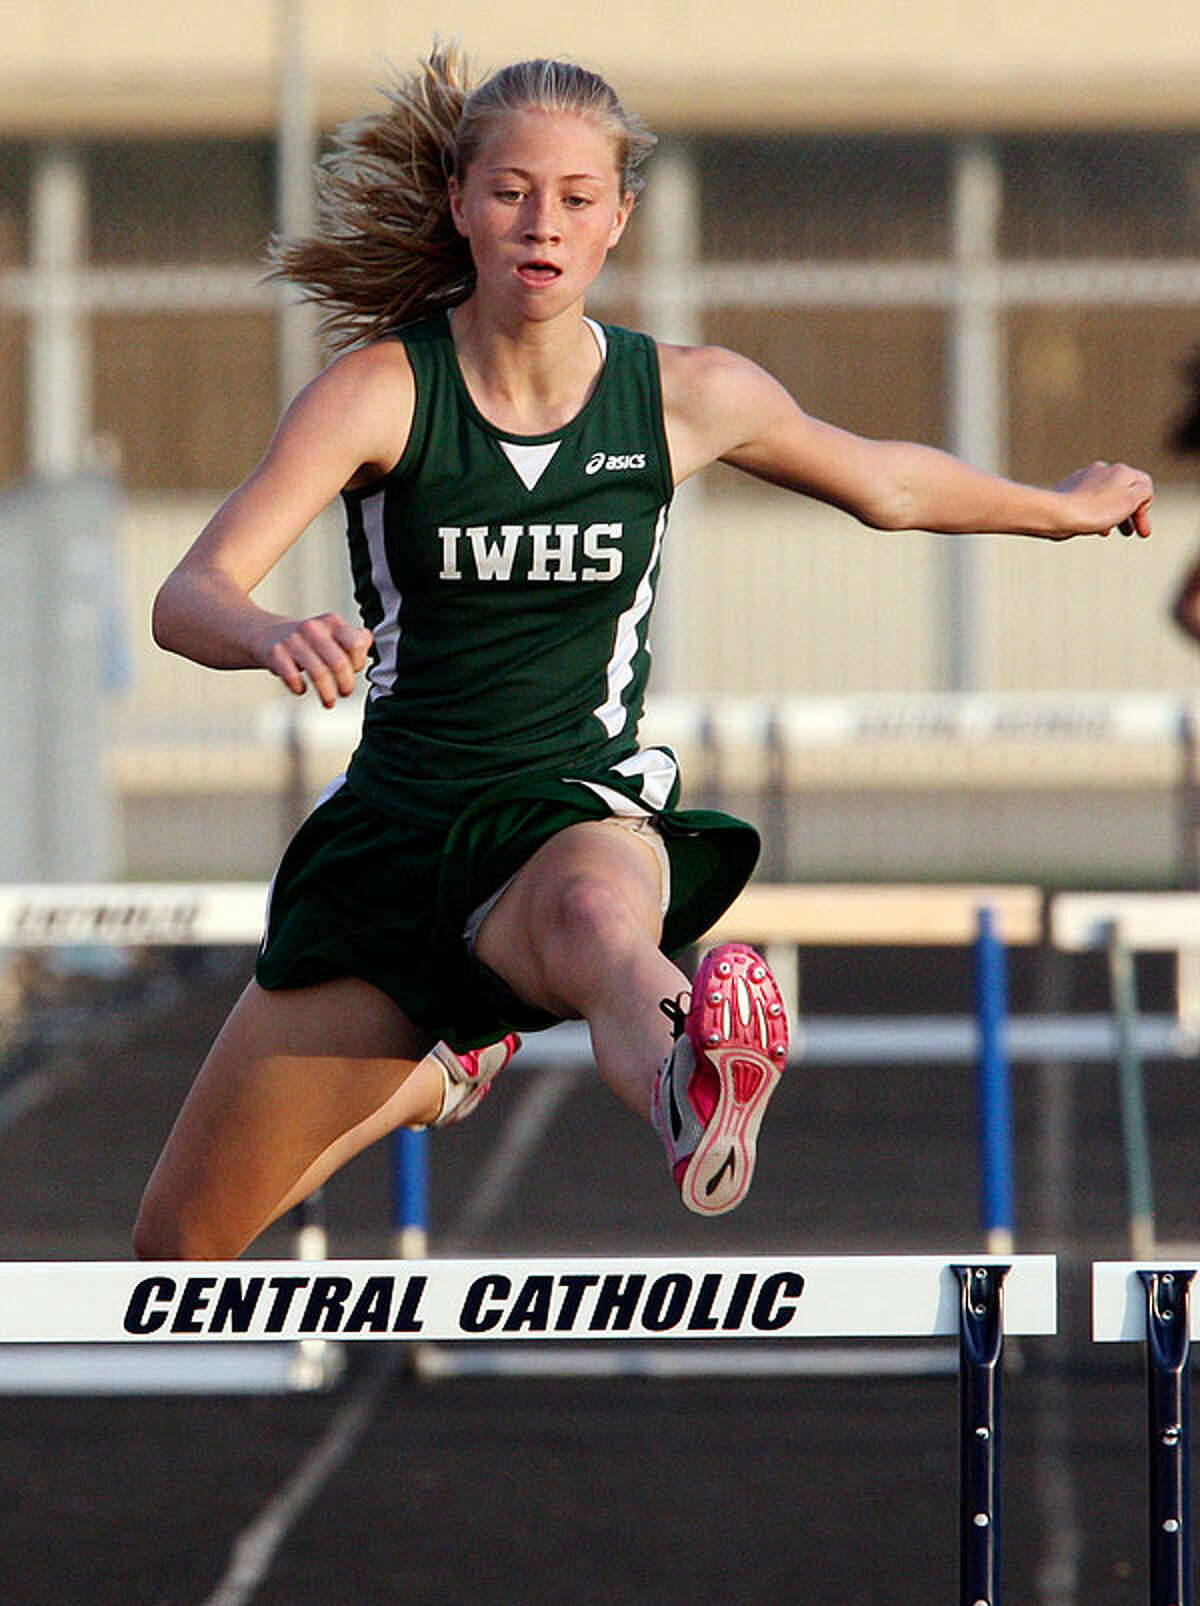 Incarnate Word's Emily Phillips clears the last hurdle in the 300-meter hurdles during the TAPPS 2-5A District Track Meet Thursday March 31, 2011 at Central Catholic High School. Phillips finished in first place.  EDWARD A. ORNELAS/eaornelas@express-news.net)